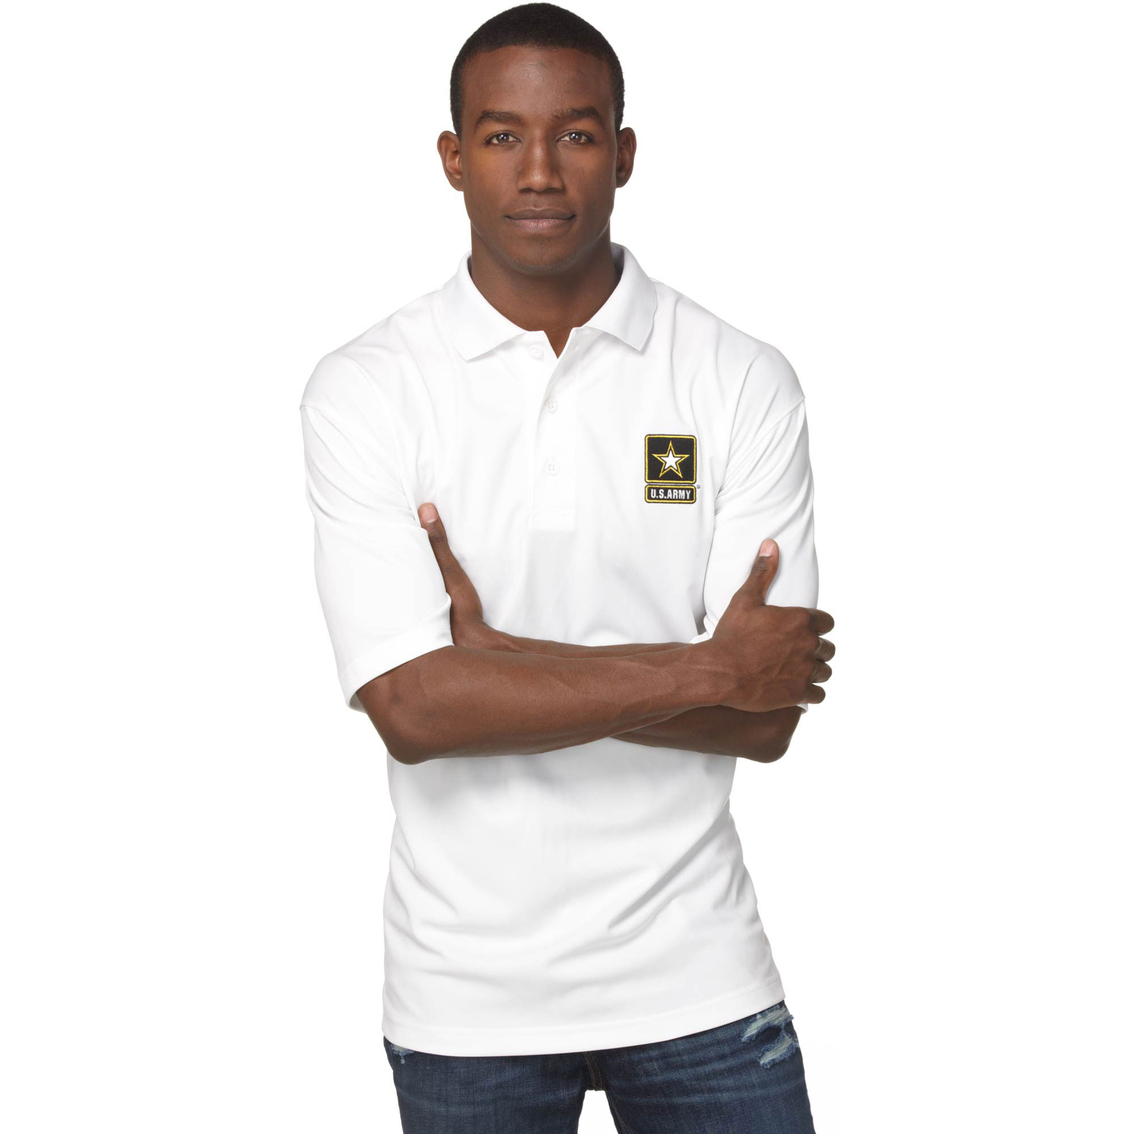 c5502ce2 Duke Performance Polo With Embroidered Army Insignia White | Apparel ...